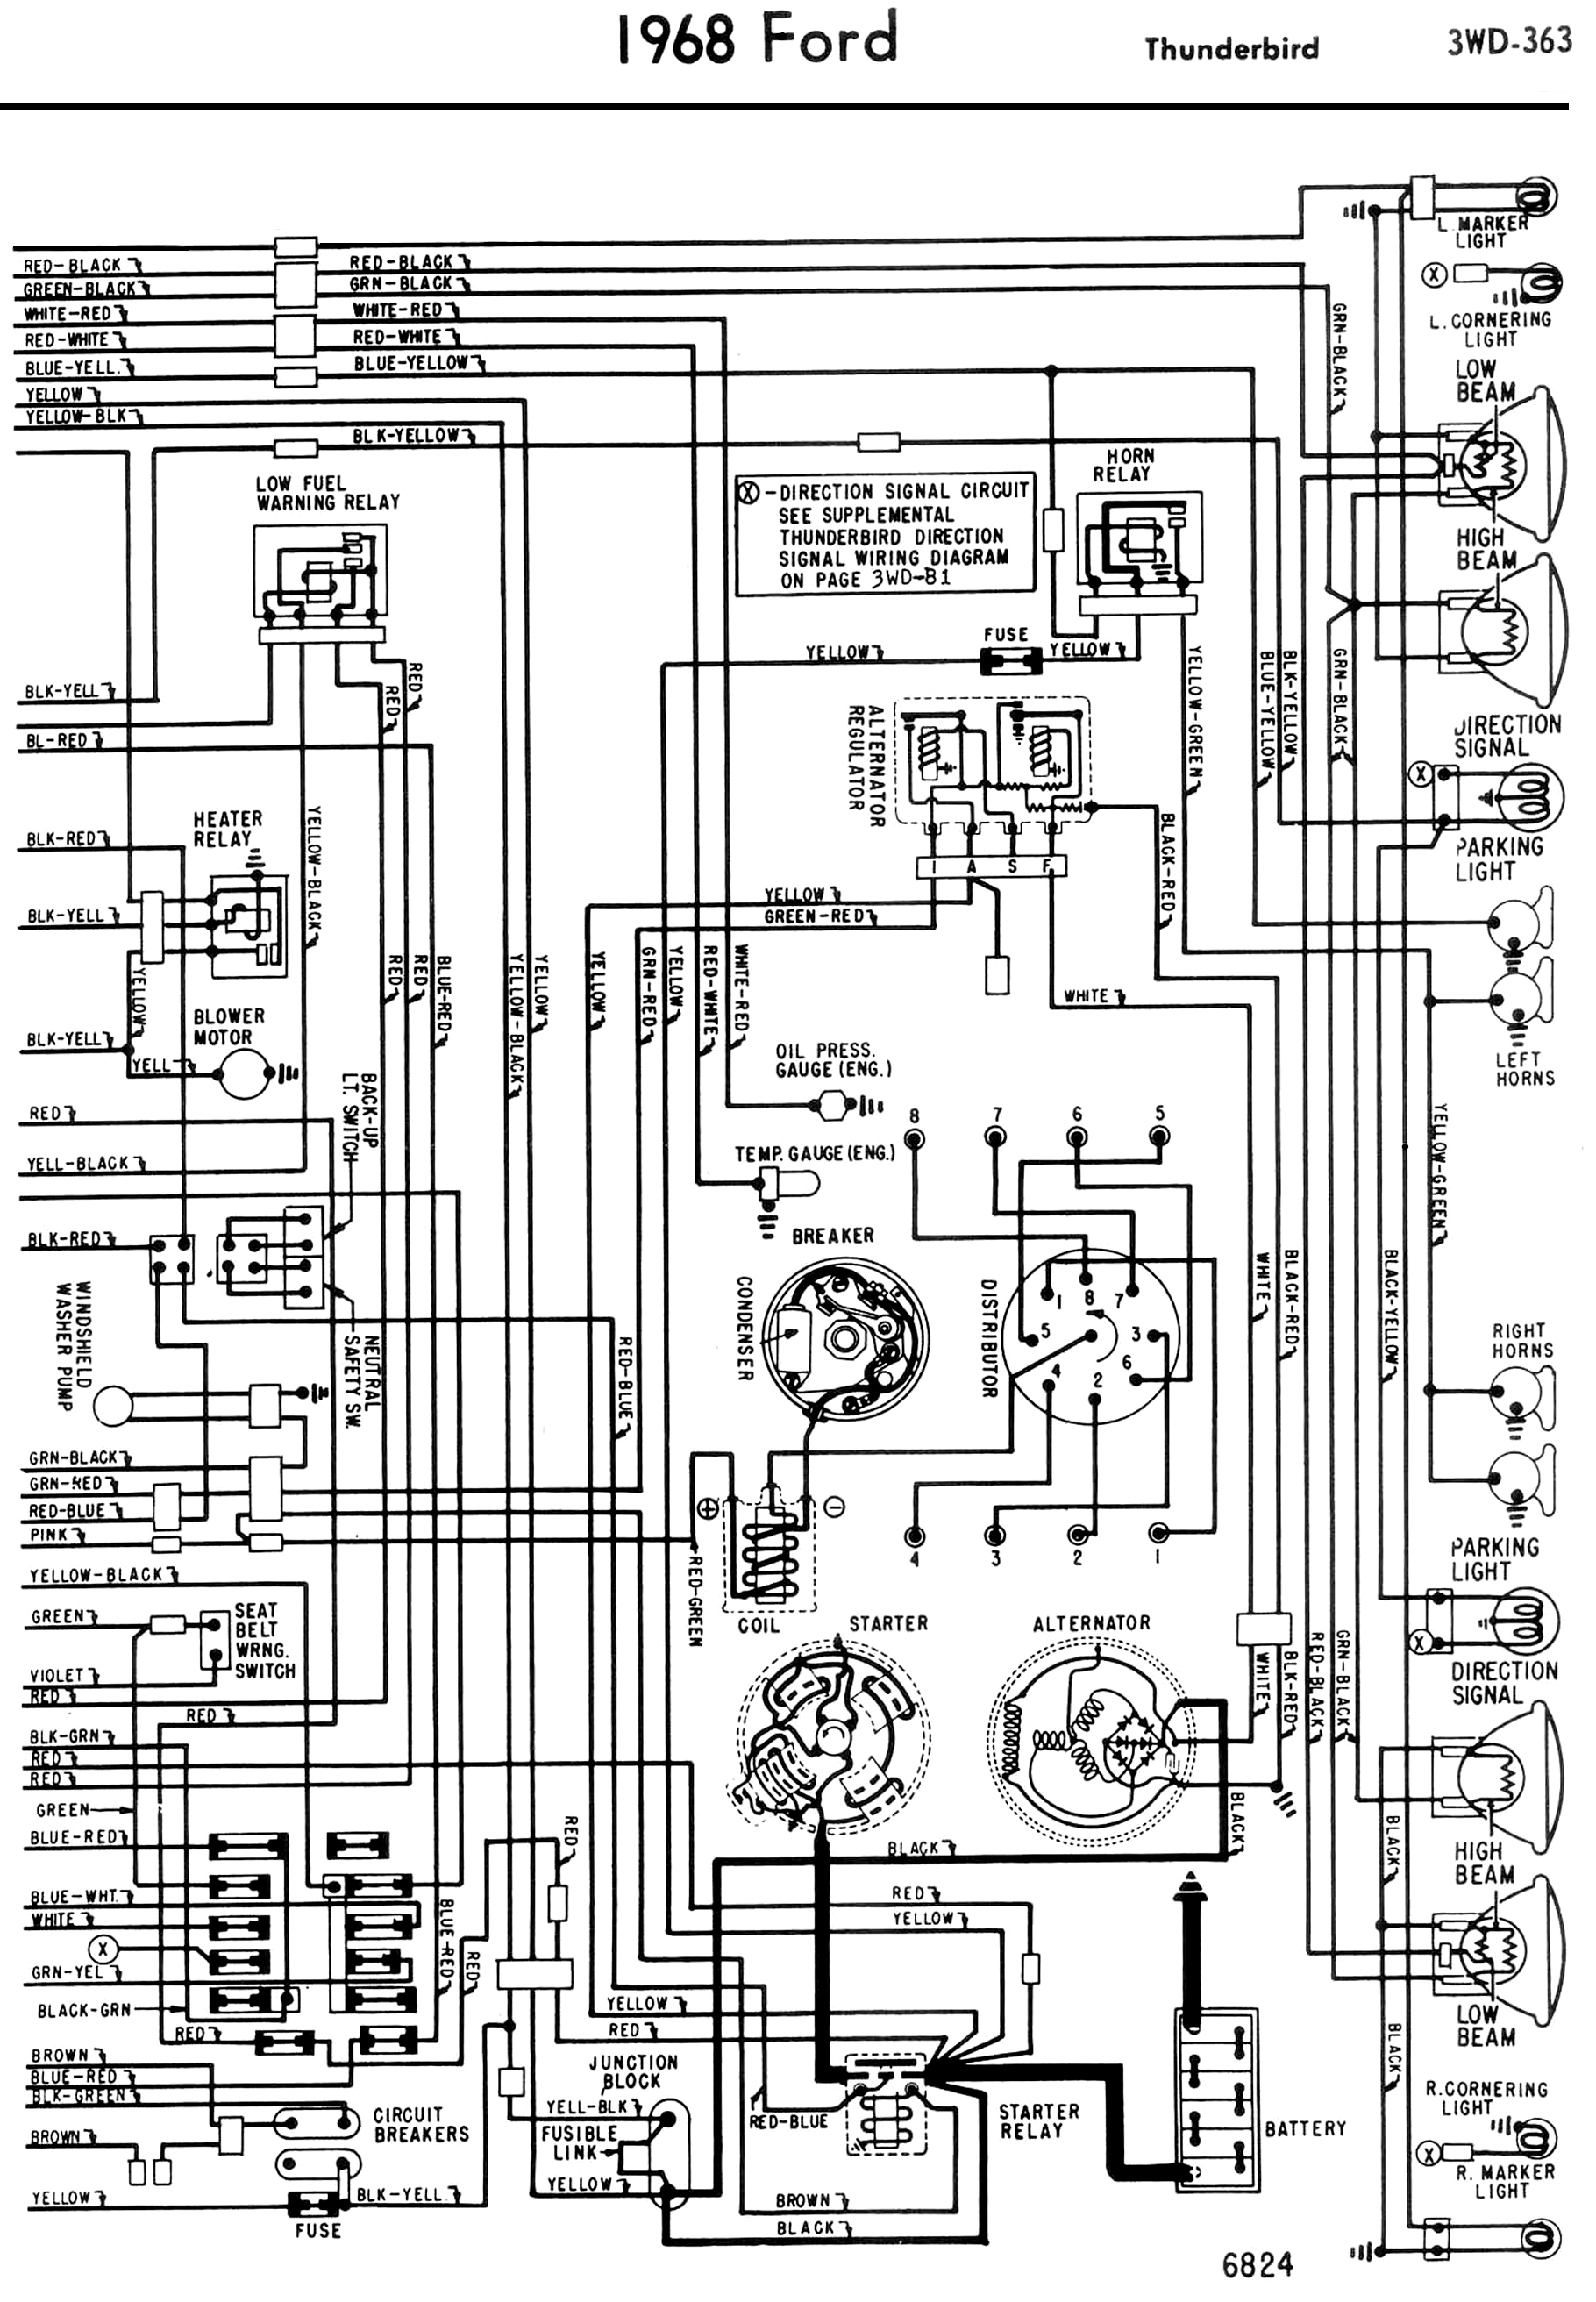 1968 Thunderbird Wiring Diagram Diagrams Source Toyota Side Mirror 1958 68 Ford Electrical Schematics 1960